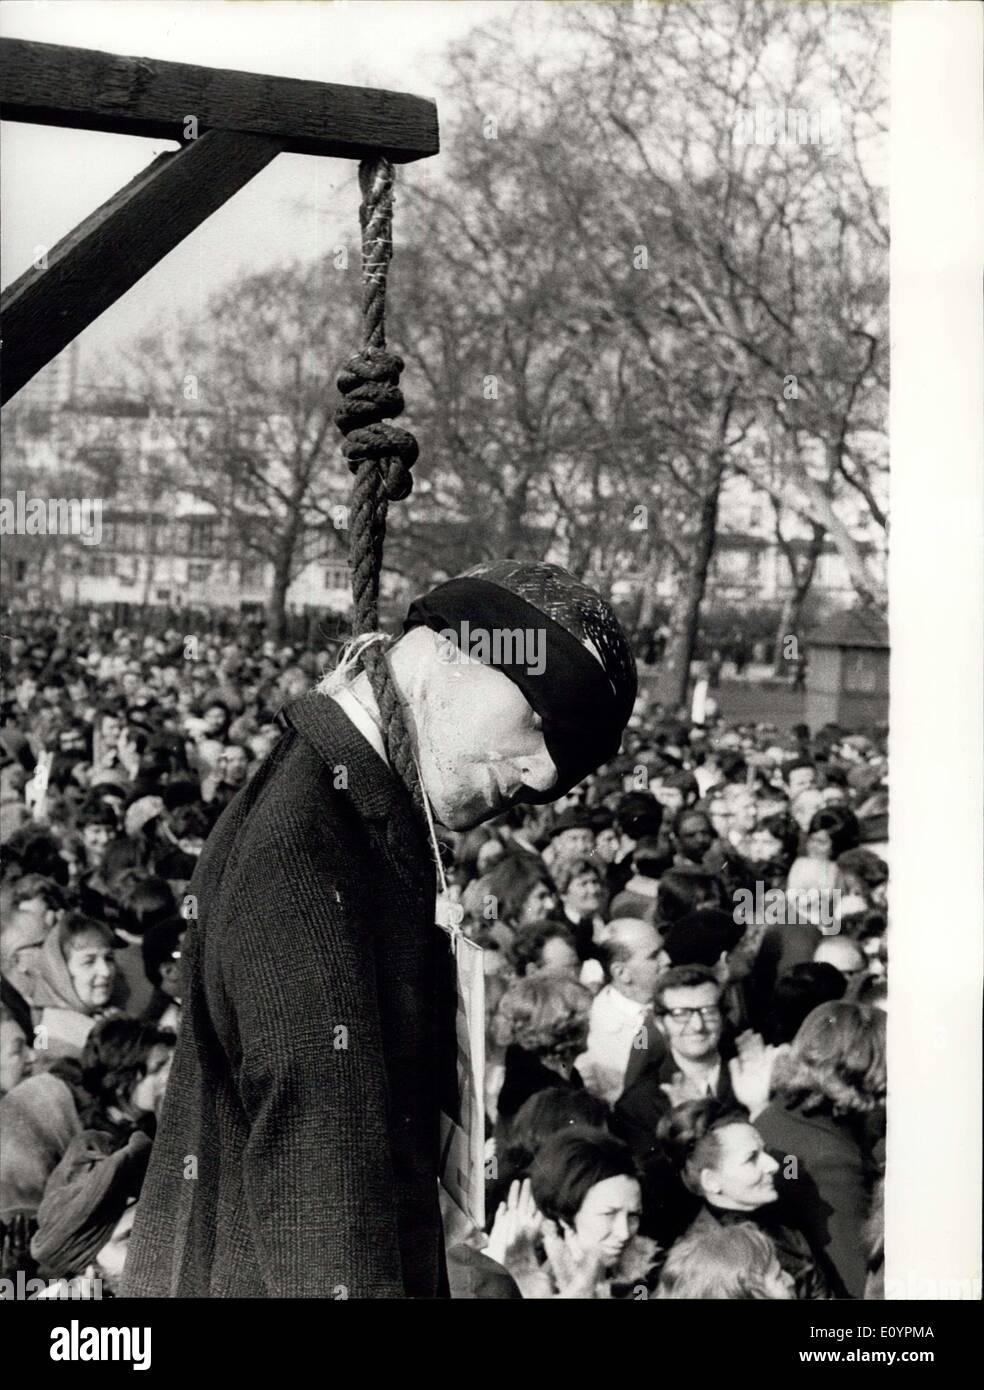 Feb. 25, 1971 - Striking Postal Workers Are Joined By Post Office Engineering Union At Mass Rally In Hyde Park: Post Office strikers from many parts of Britain were joined by members of the Post Office Engineering Union, who are giving their support to the strikers, when they attended a mass rally in Hyde Park today. They were addressed by Tom Jackson, chief of the Post Office Workers' Union, and Lord Dela Court-Smith, General-Secretary of the Post Office Engineering Union. Photo shows An effigy of Mr - Stock Image